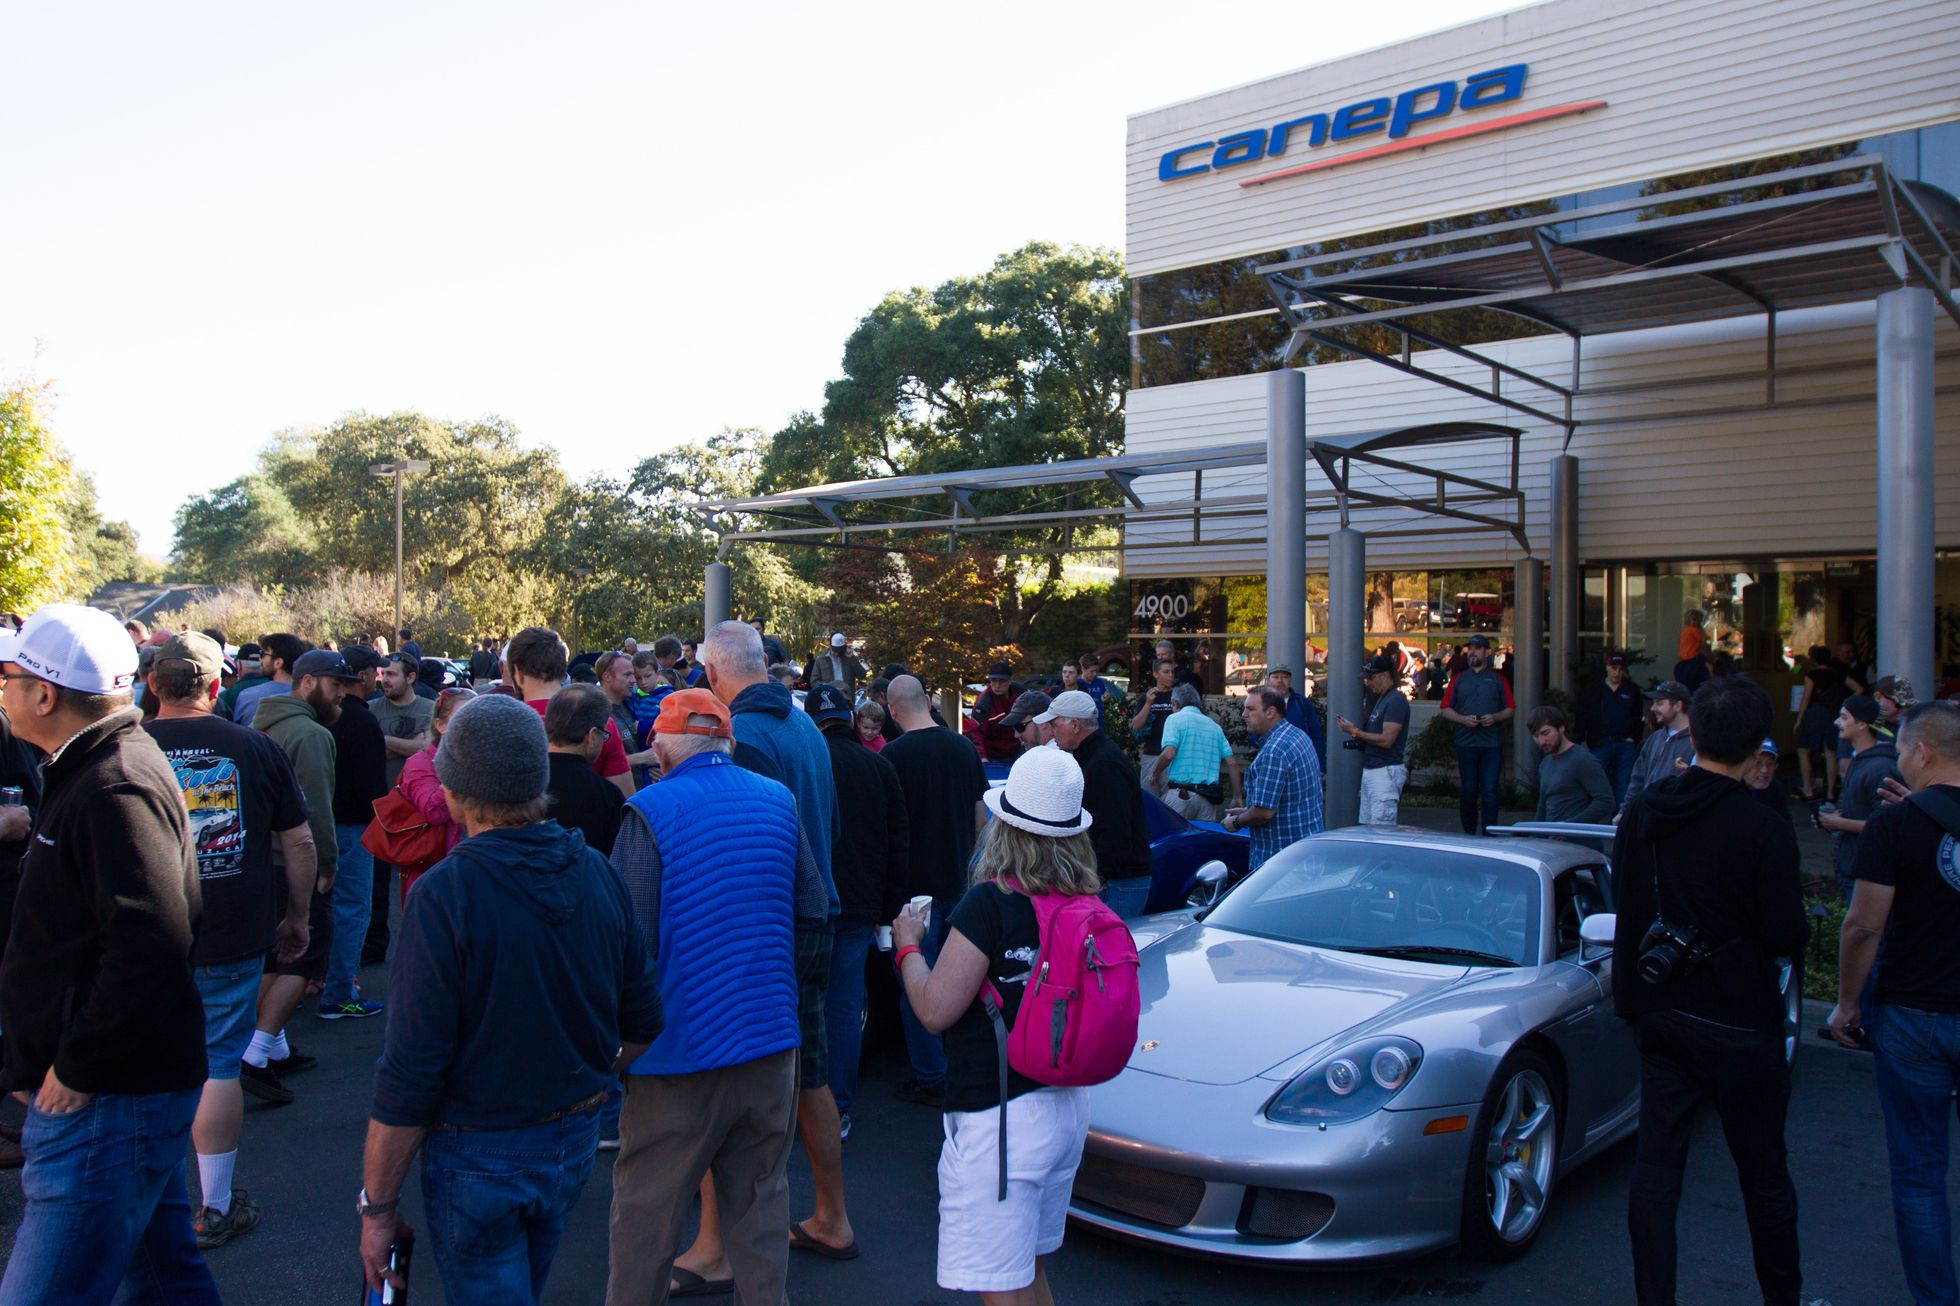 Bruce Canepa Cars and Coffee October 2016